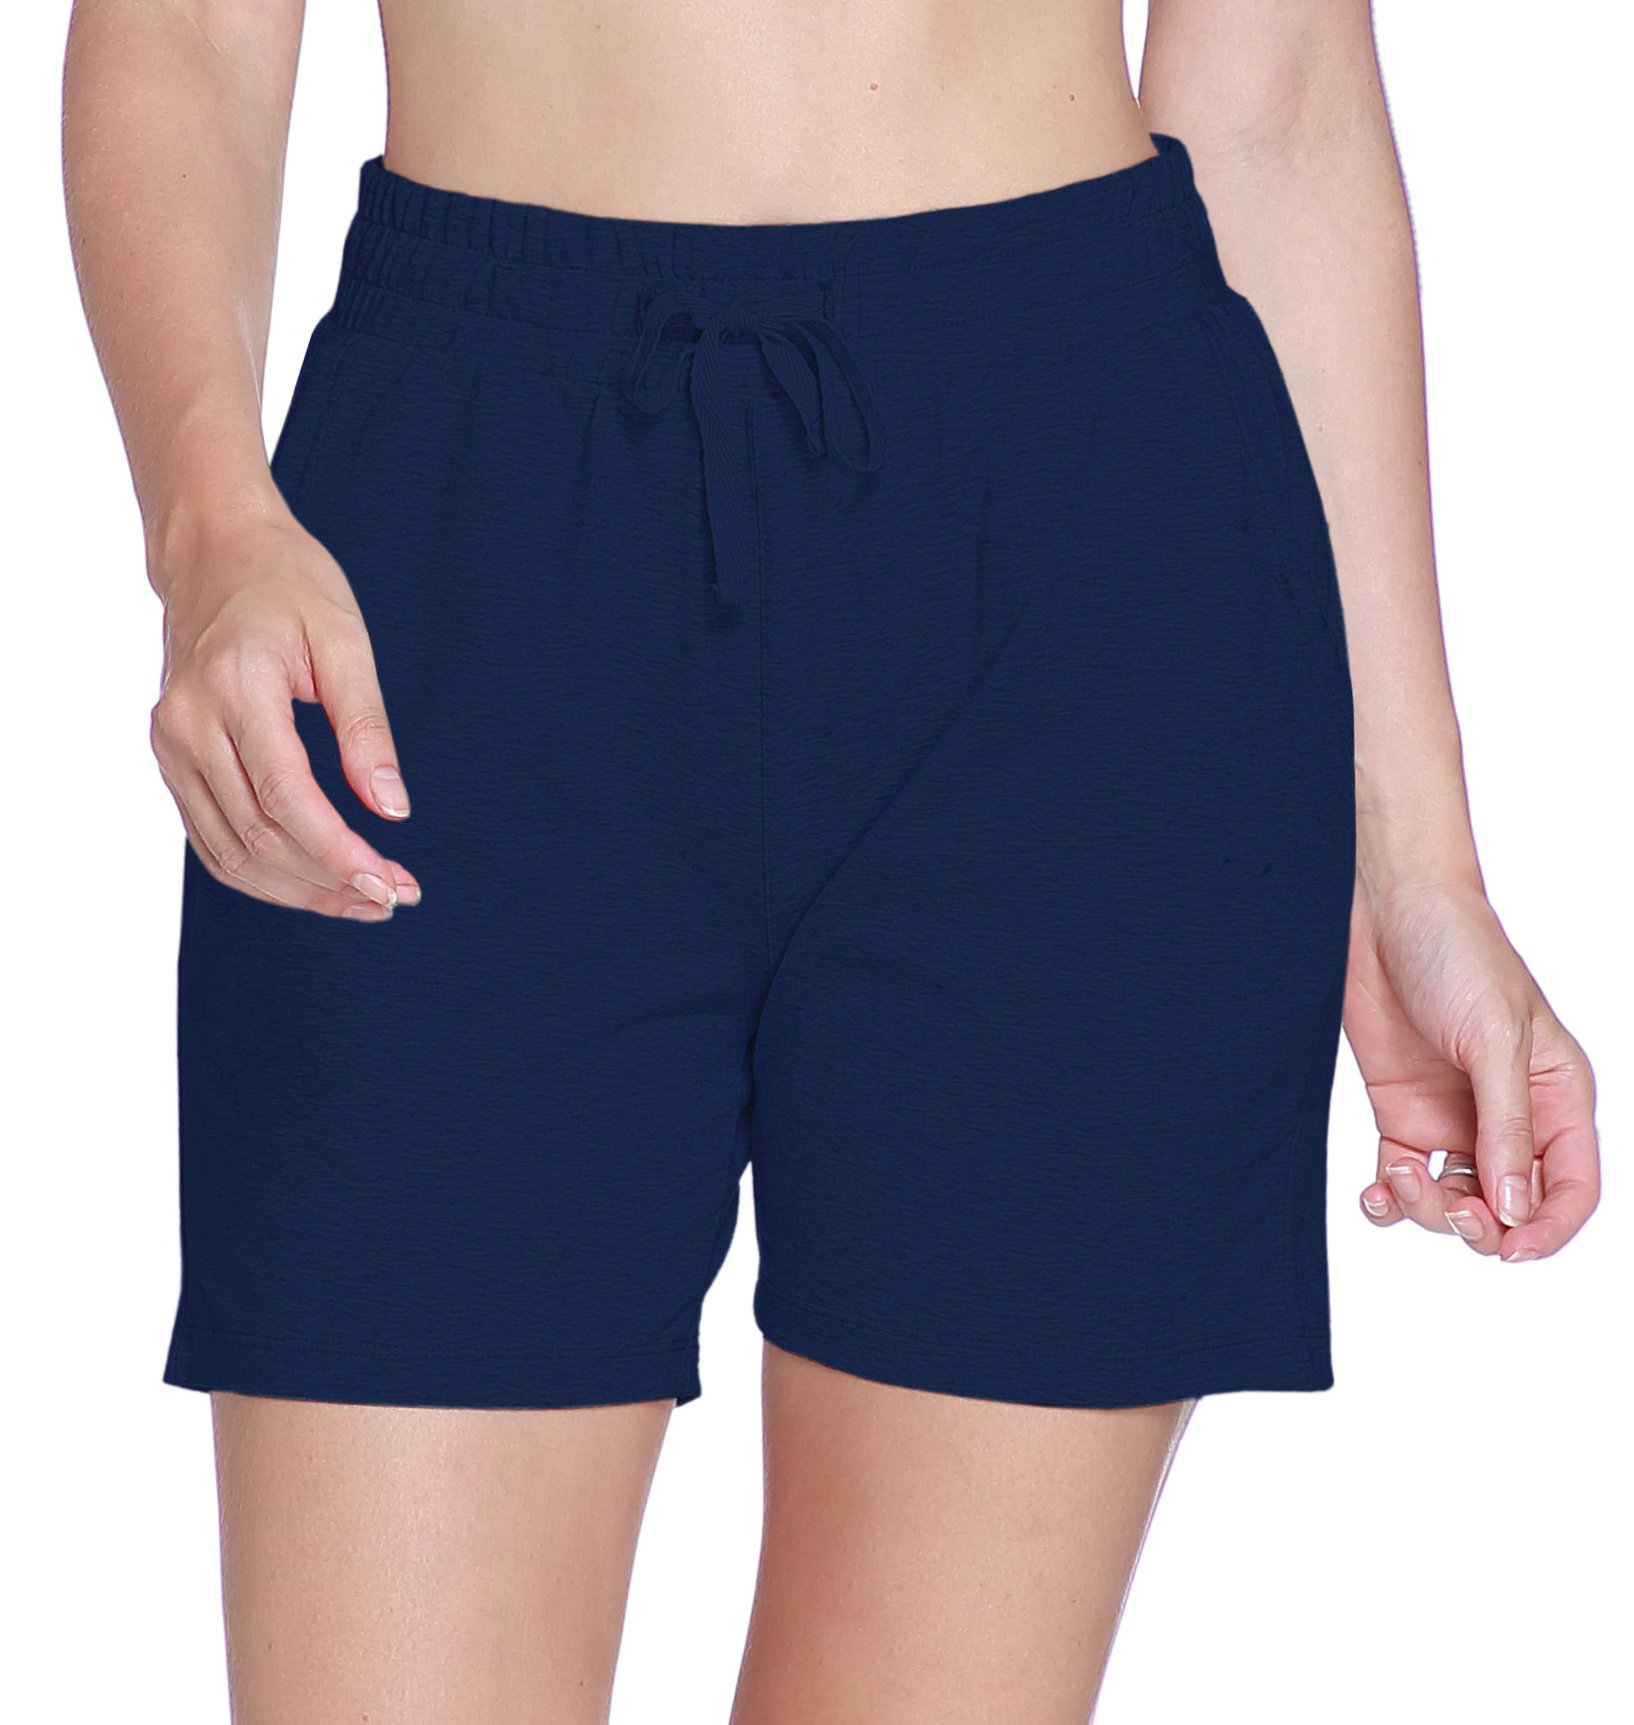 ChinFun Women's Activewear Yoga Workout Lounge Shorts Cotton Sweat Shorts with Pockets Solid Navy M